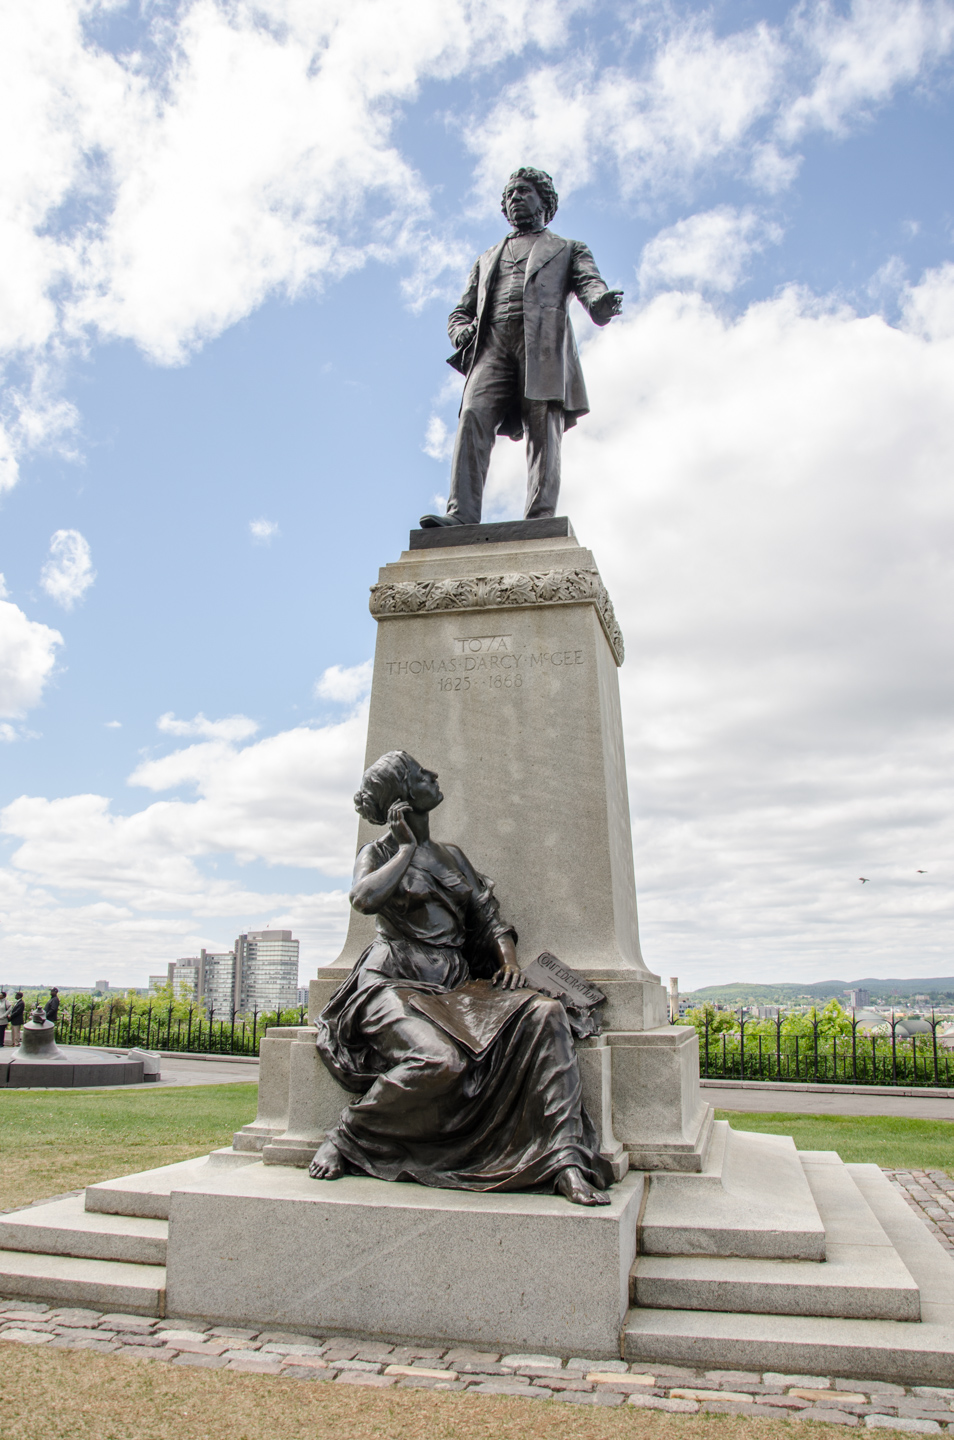 View enlarged image of the Thomas D'Arcy McGee statue